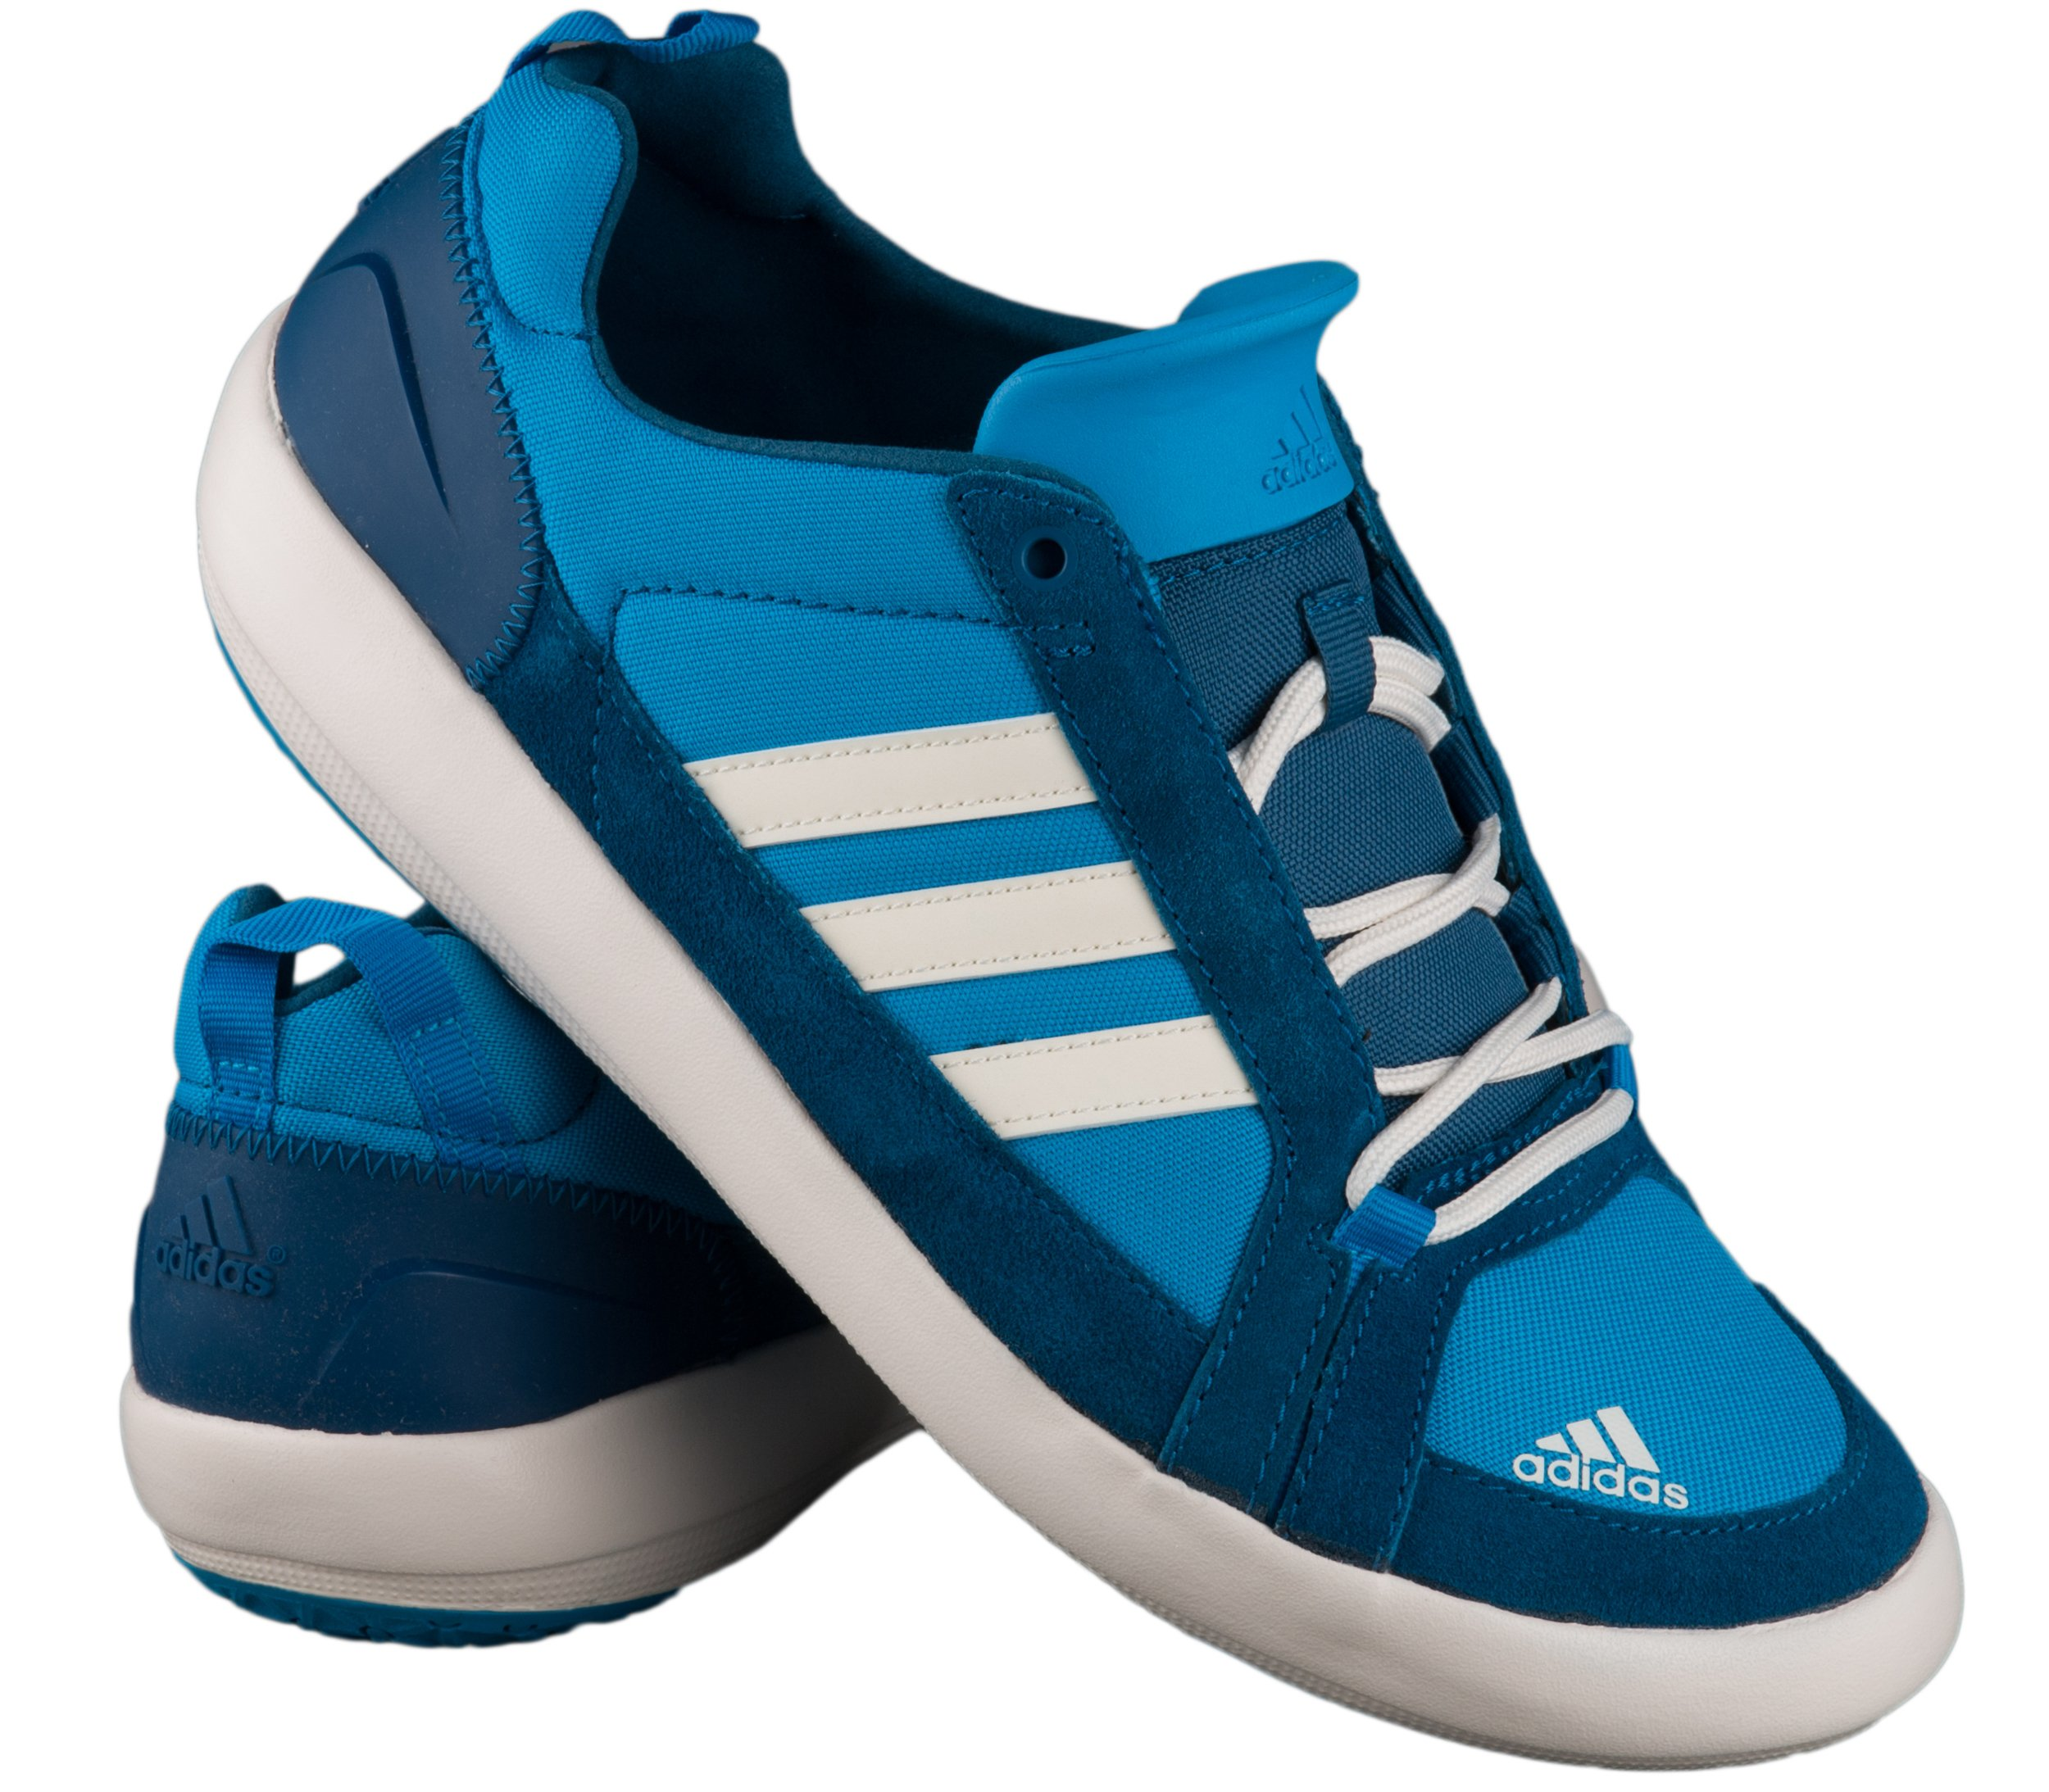 BUTY ADIDAS BOAT LACE DLX 42 OUTDOOR D66754